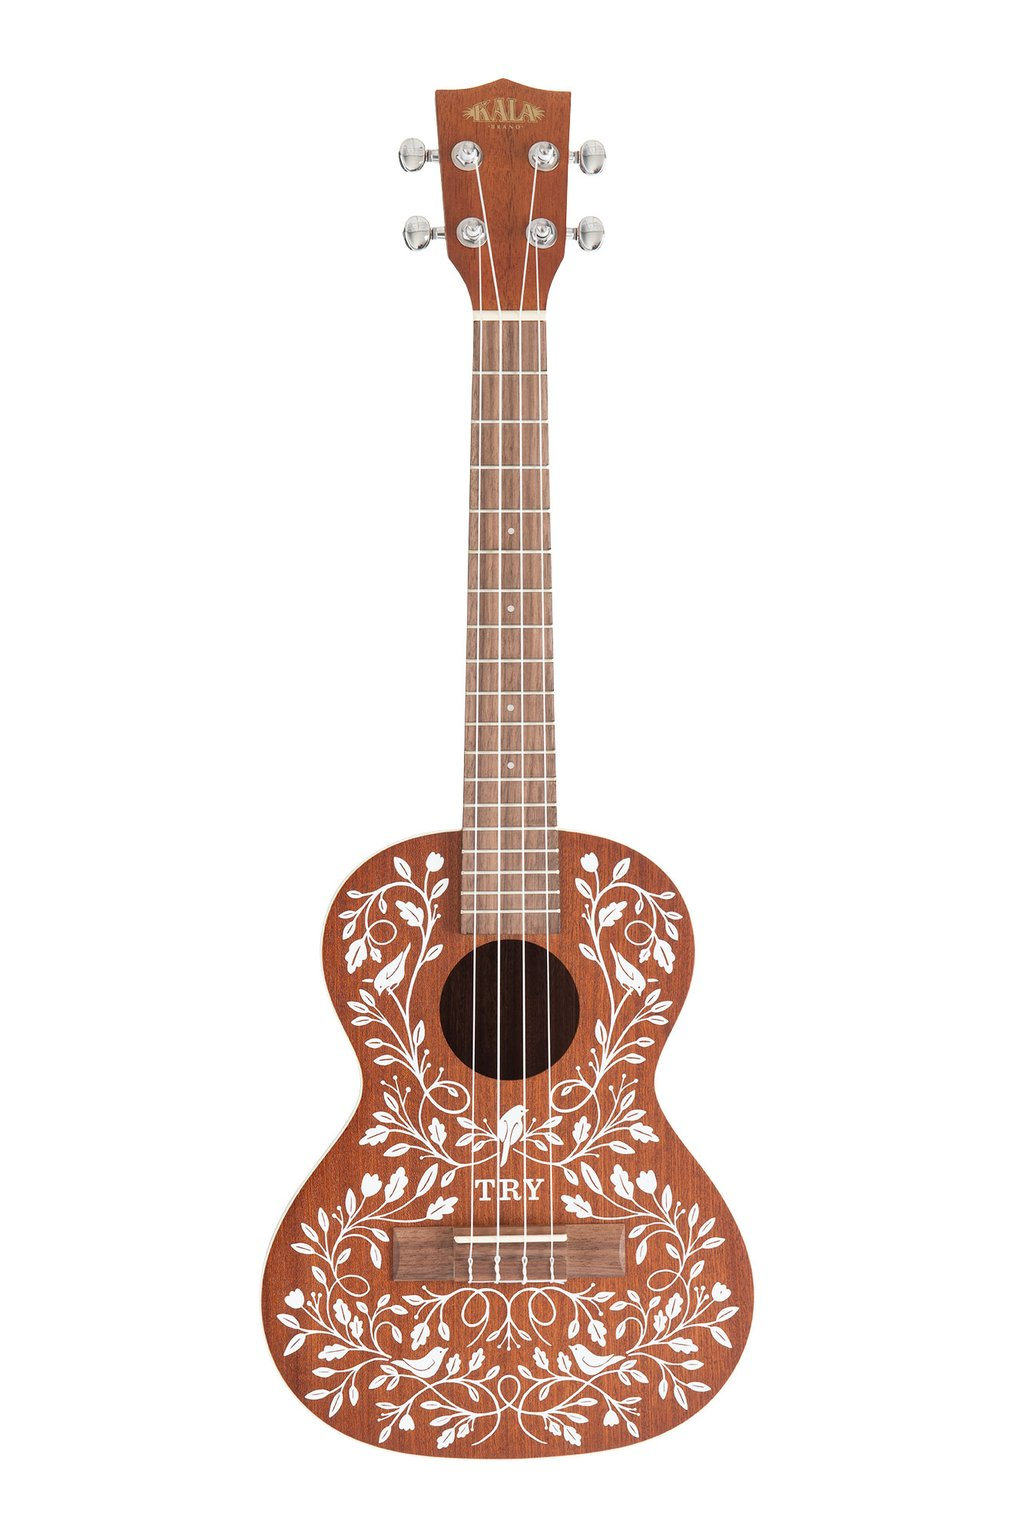 Ukulele Mandy Harvey Signature Series Kala